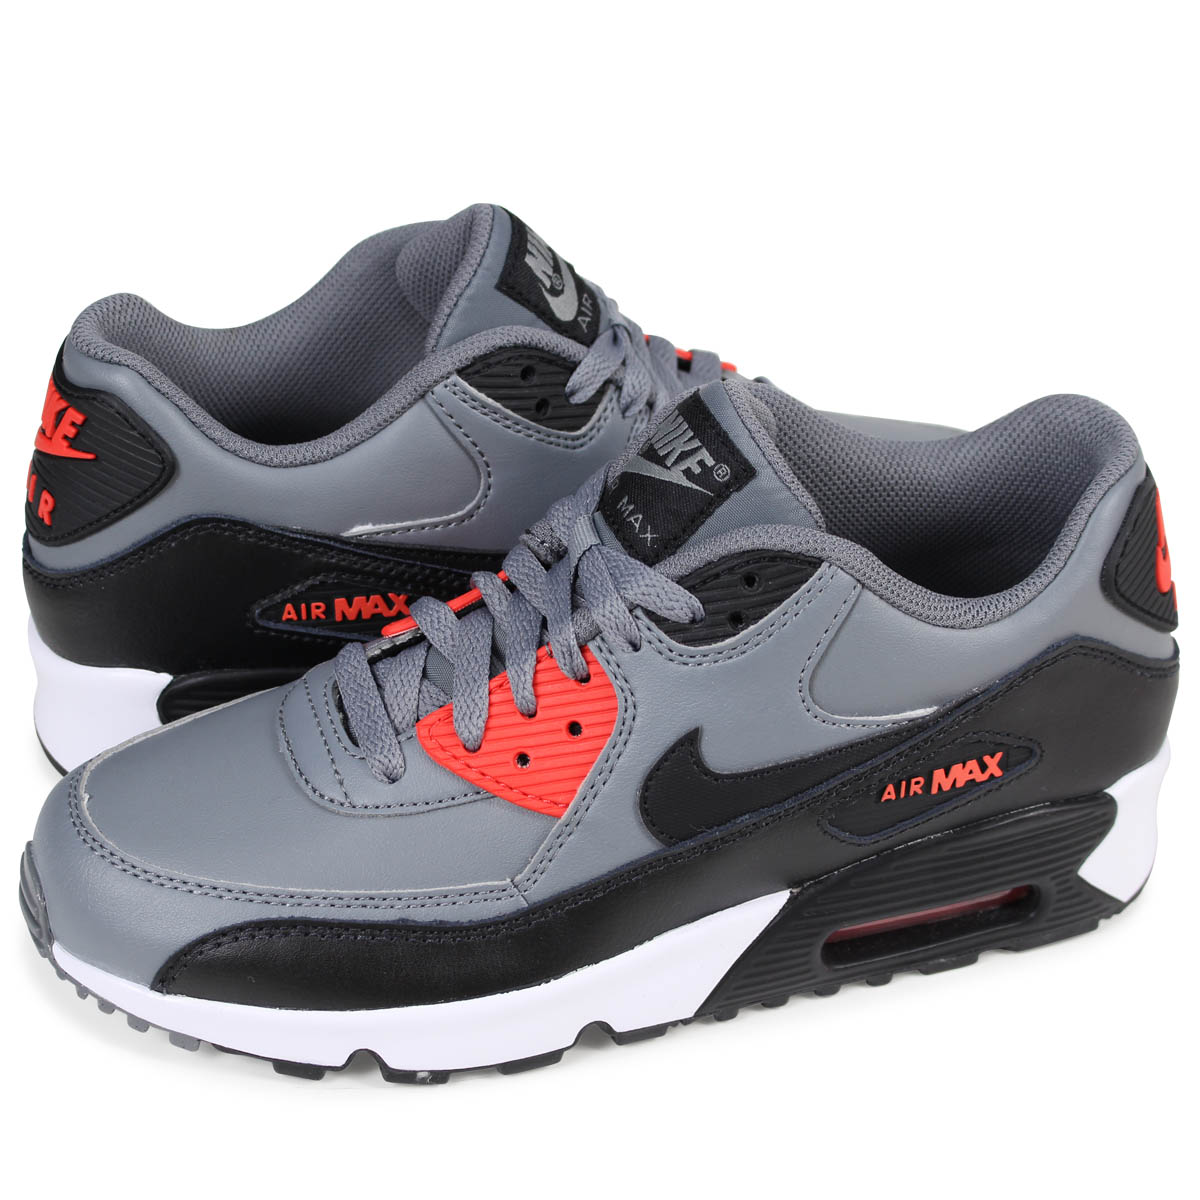 reputable site 8ac36 5af3e NIKE AIR MAX 90 LEATHER GS Kie Ney AMAX 90 Lady's sneakers 833,412-010 gray  [load planned Shinnyu load in reservation product 2/14 containing]